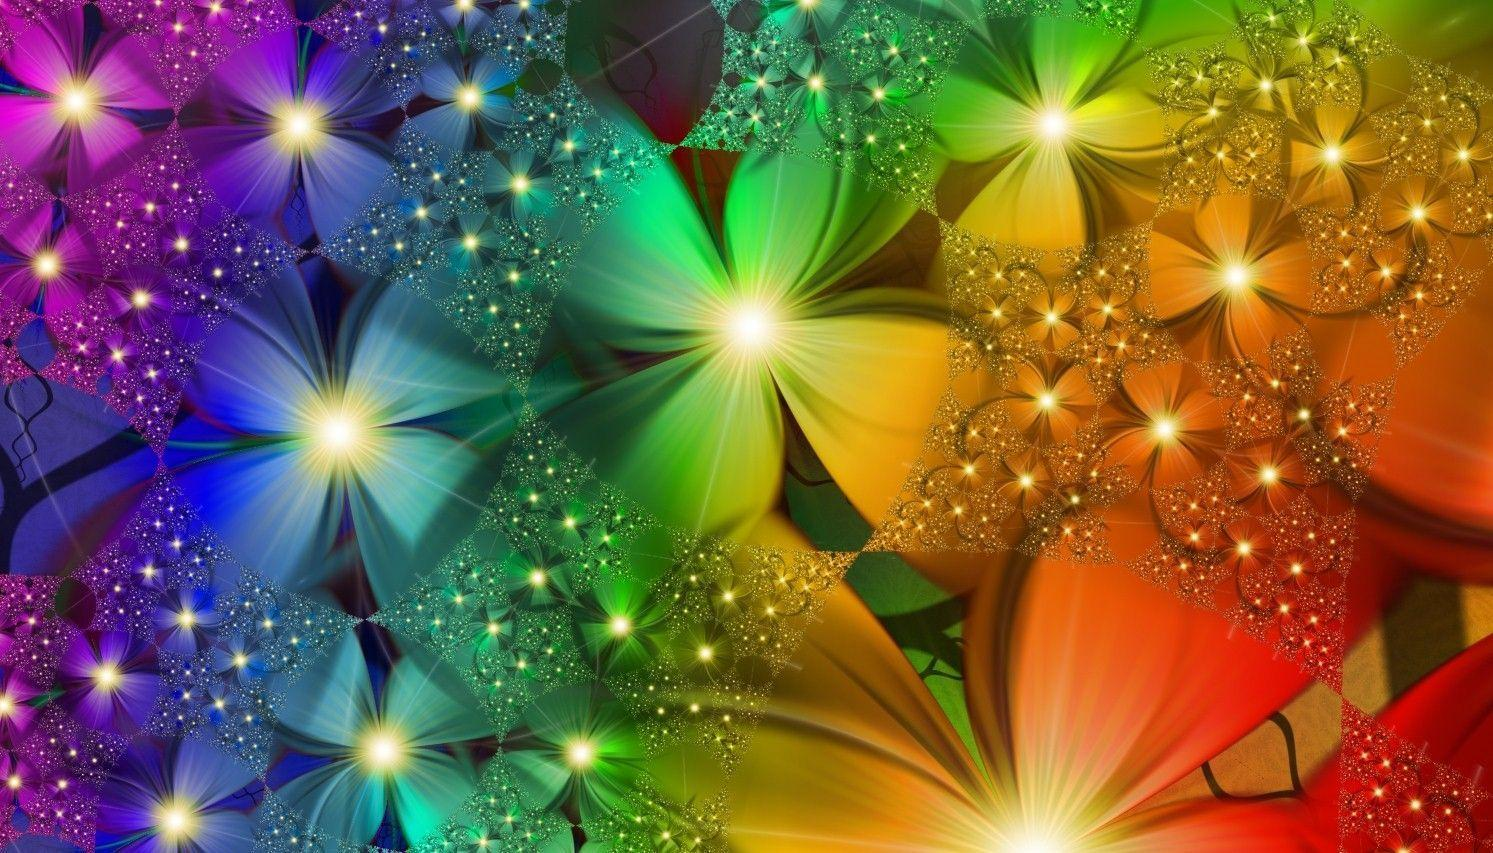 rainbow flowers wallpaper paintings - photo #24